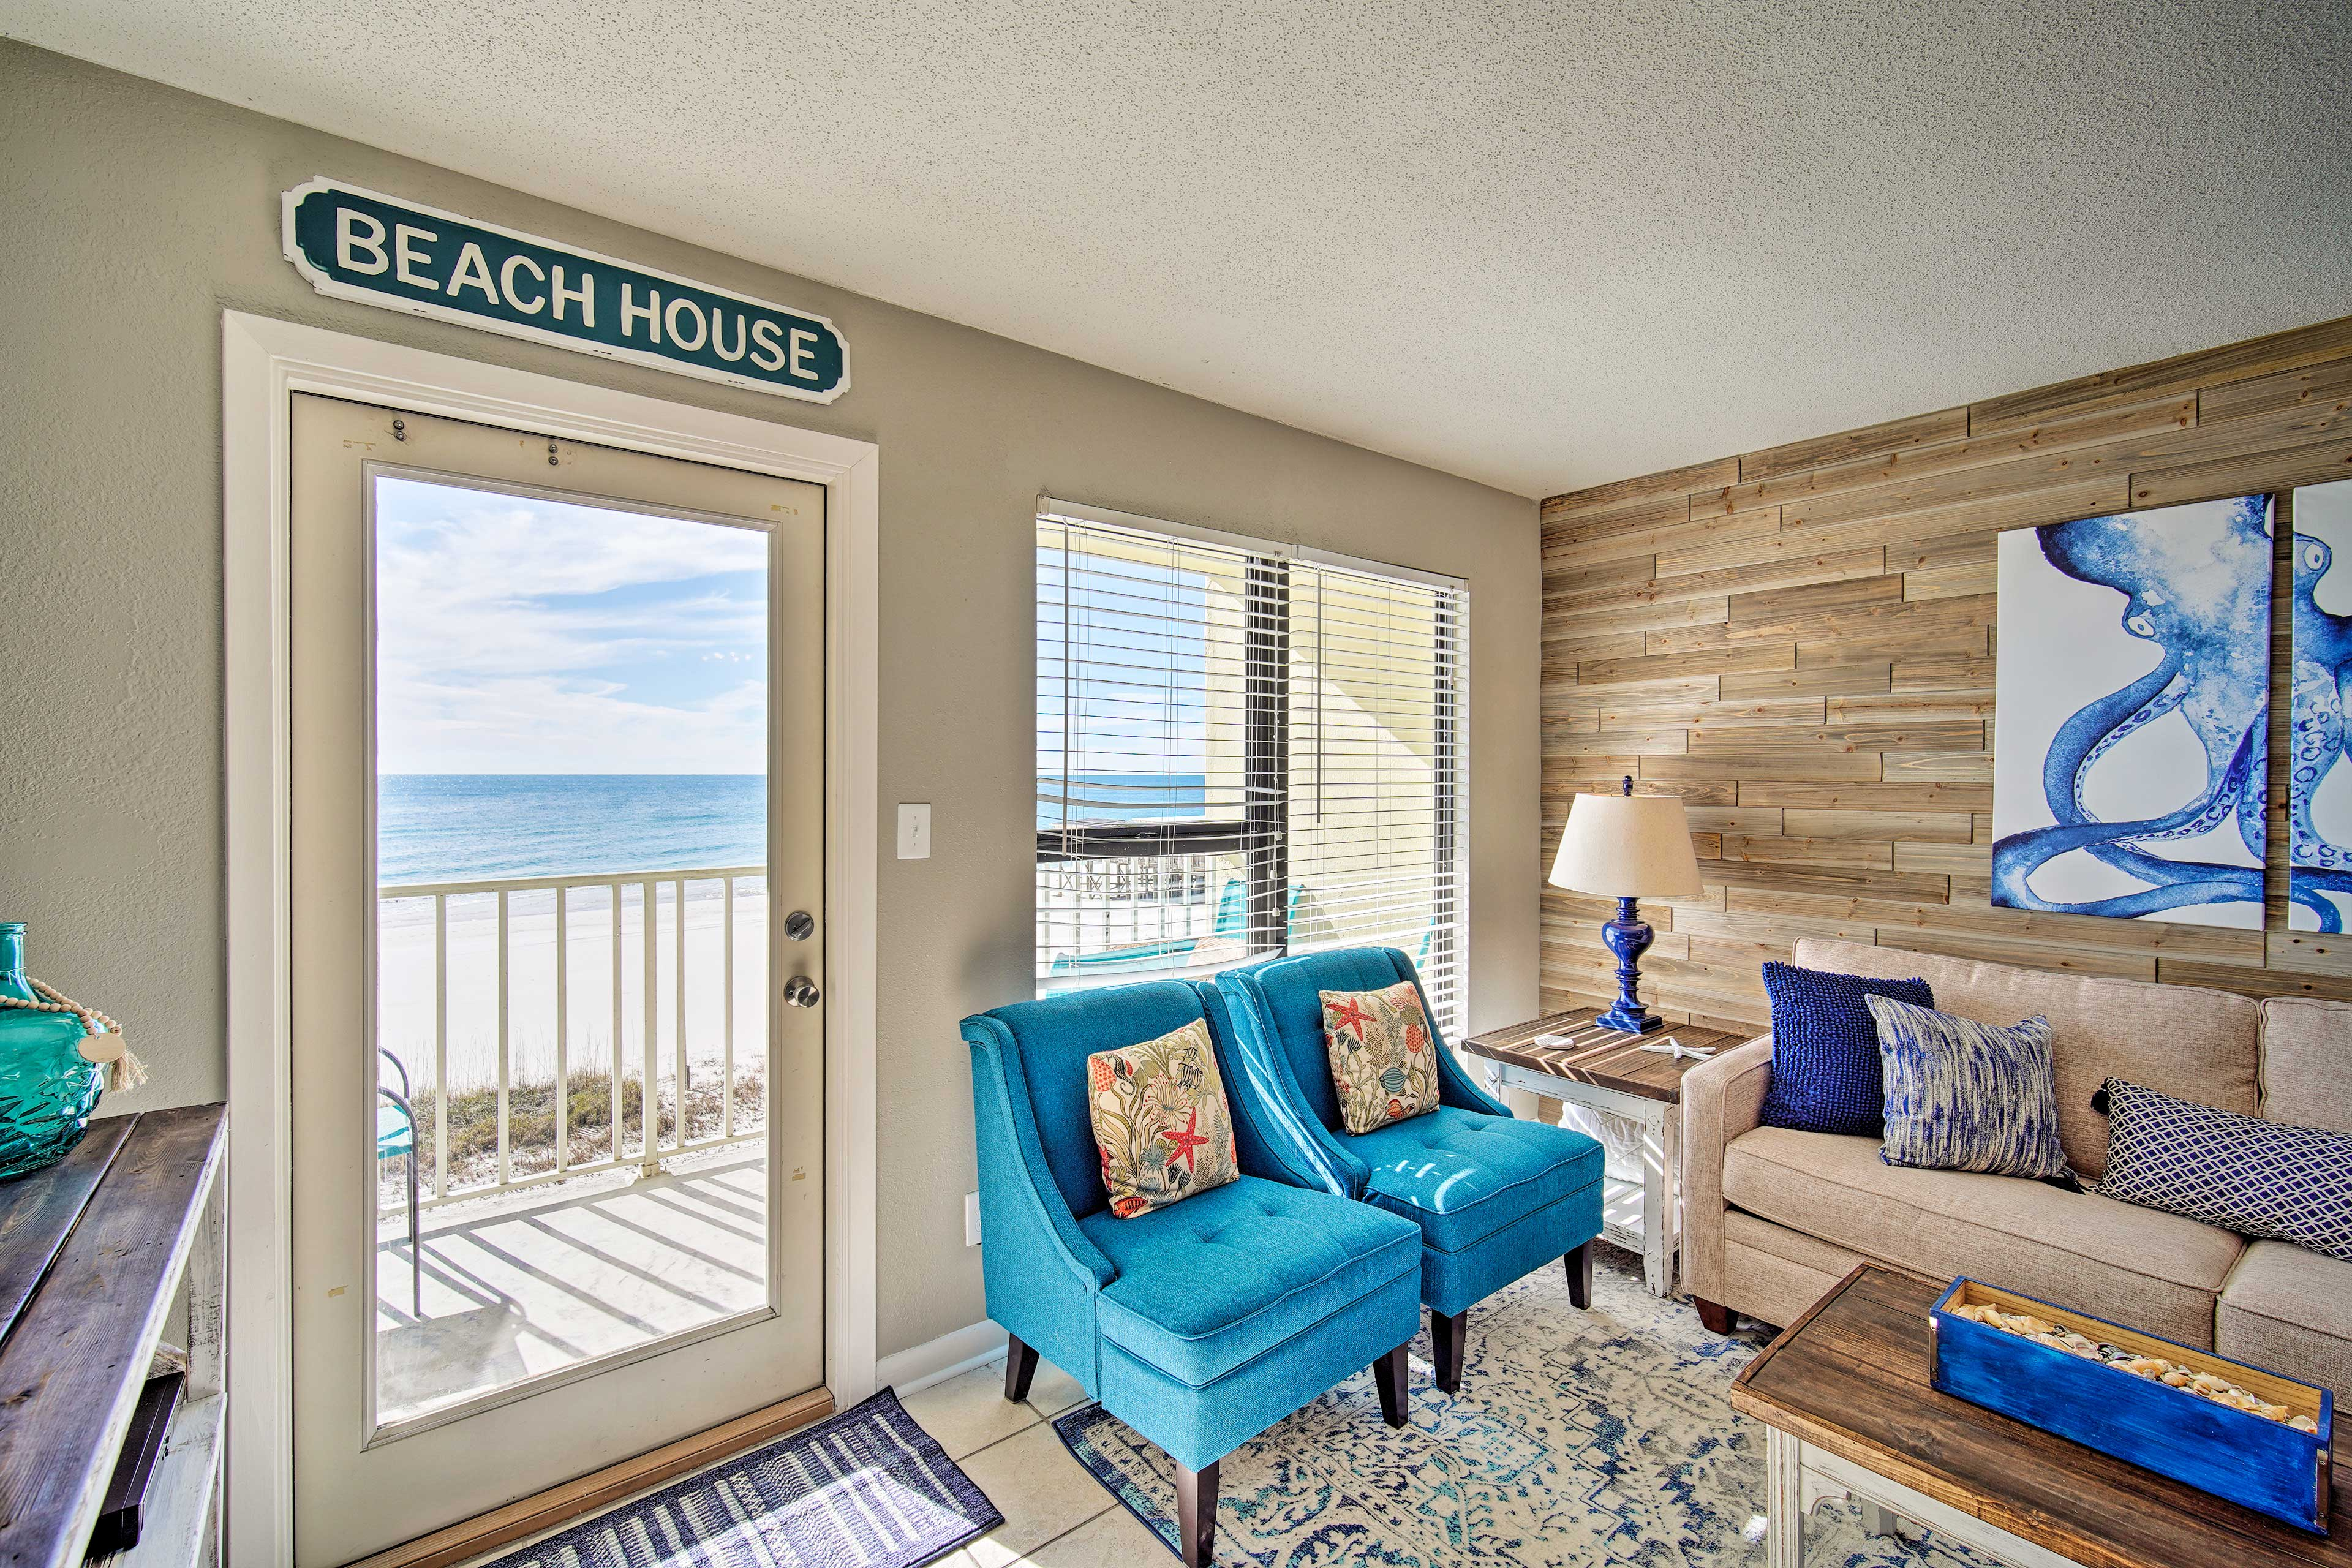 Make this sweet condo your family's 'Beach House' in Gulf Shores!